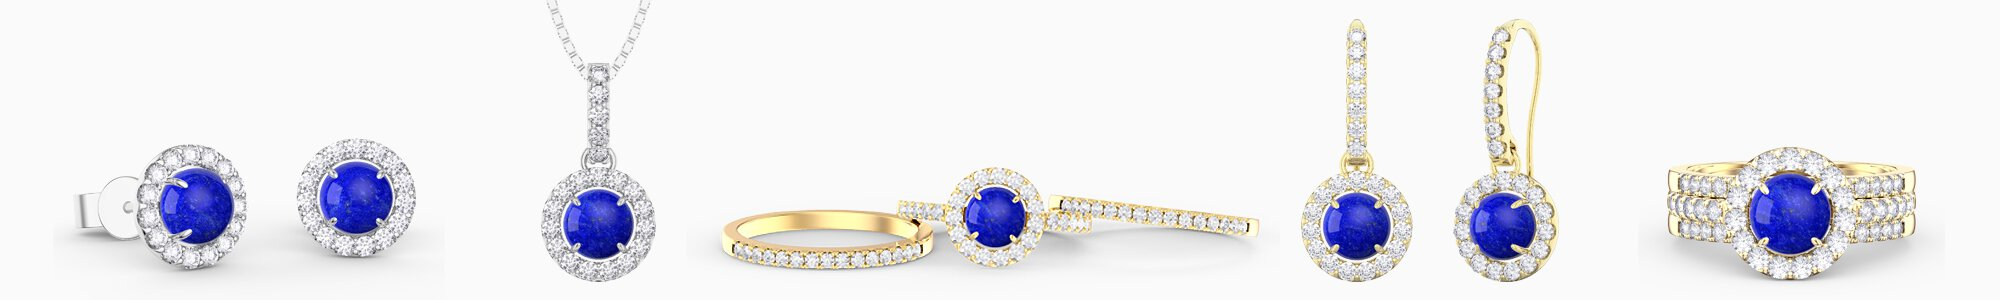 Lapis Lazuli Jewellery - from Earrings studs and drops to Pendants to Engagement Rings